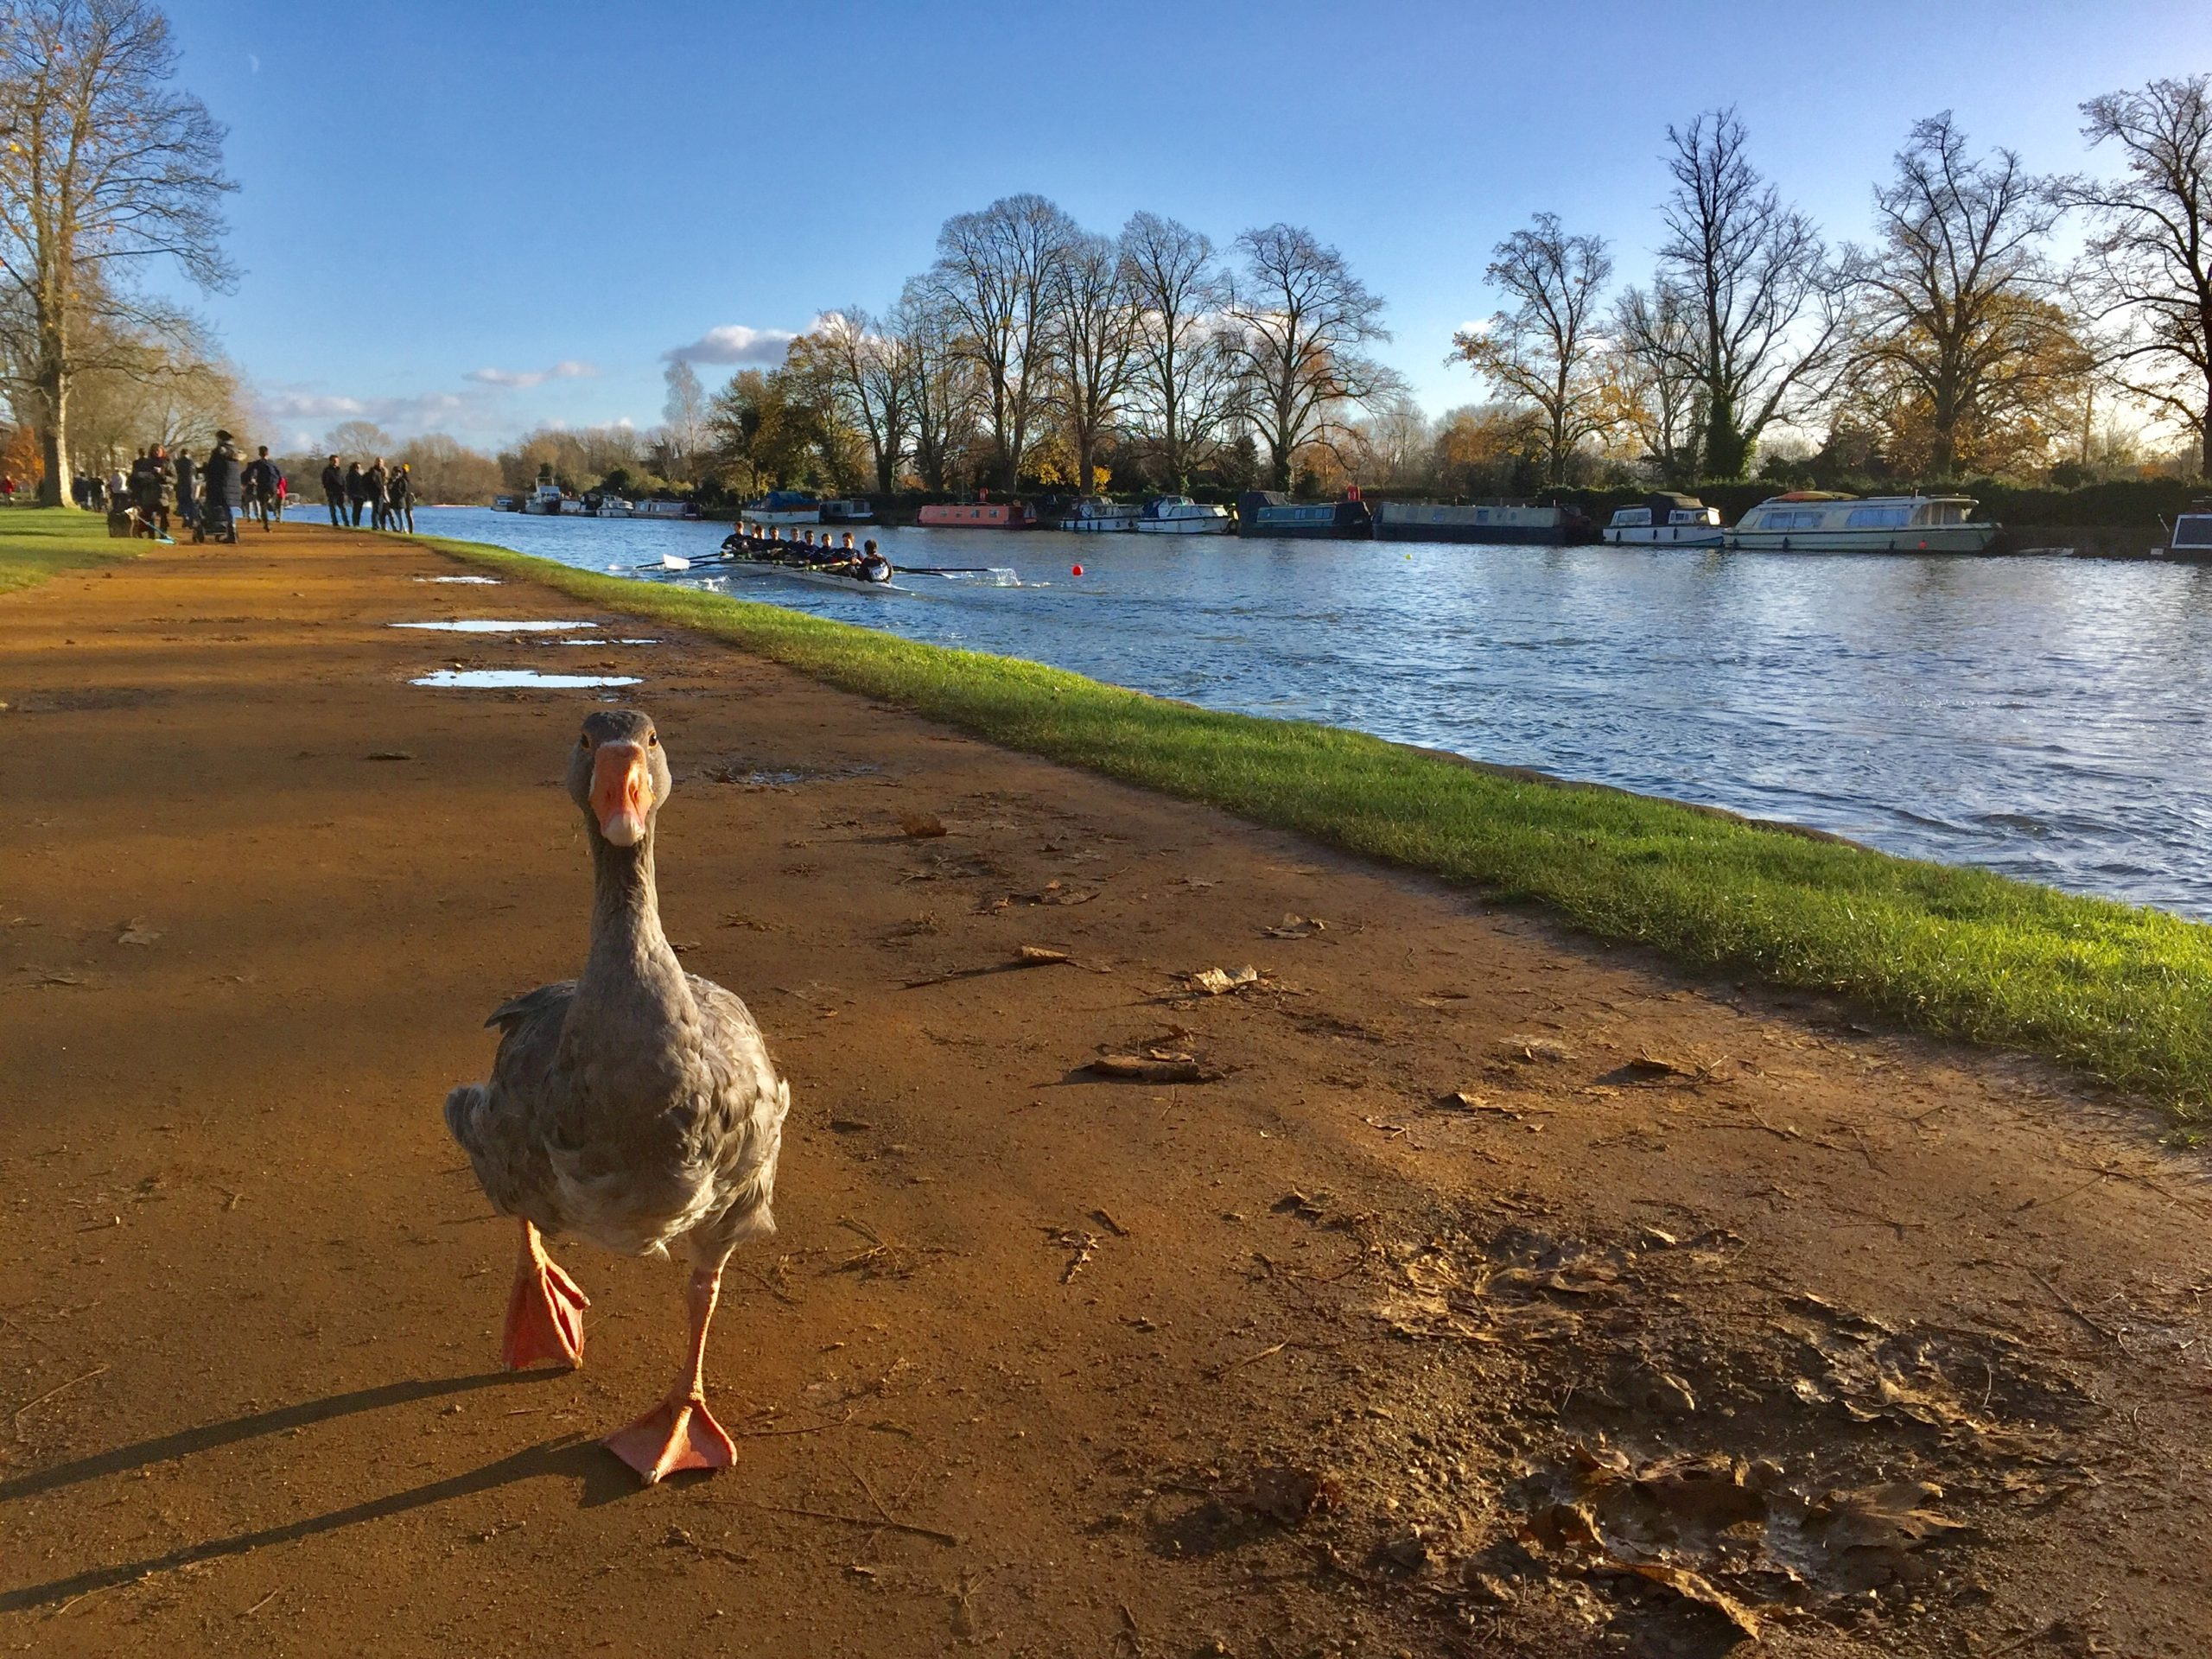 A goose by the Thames river